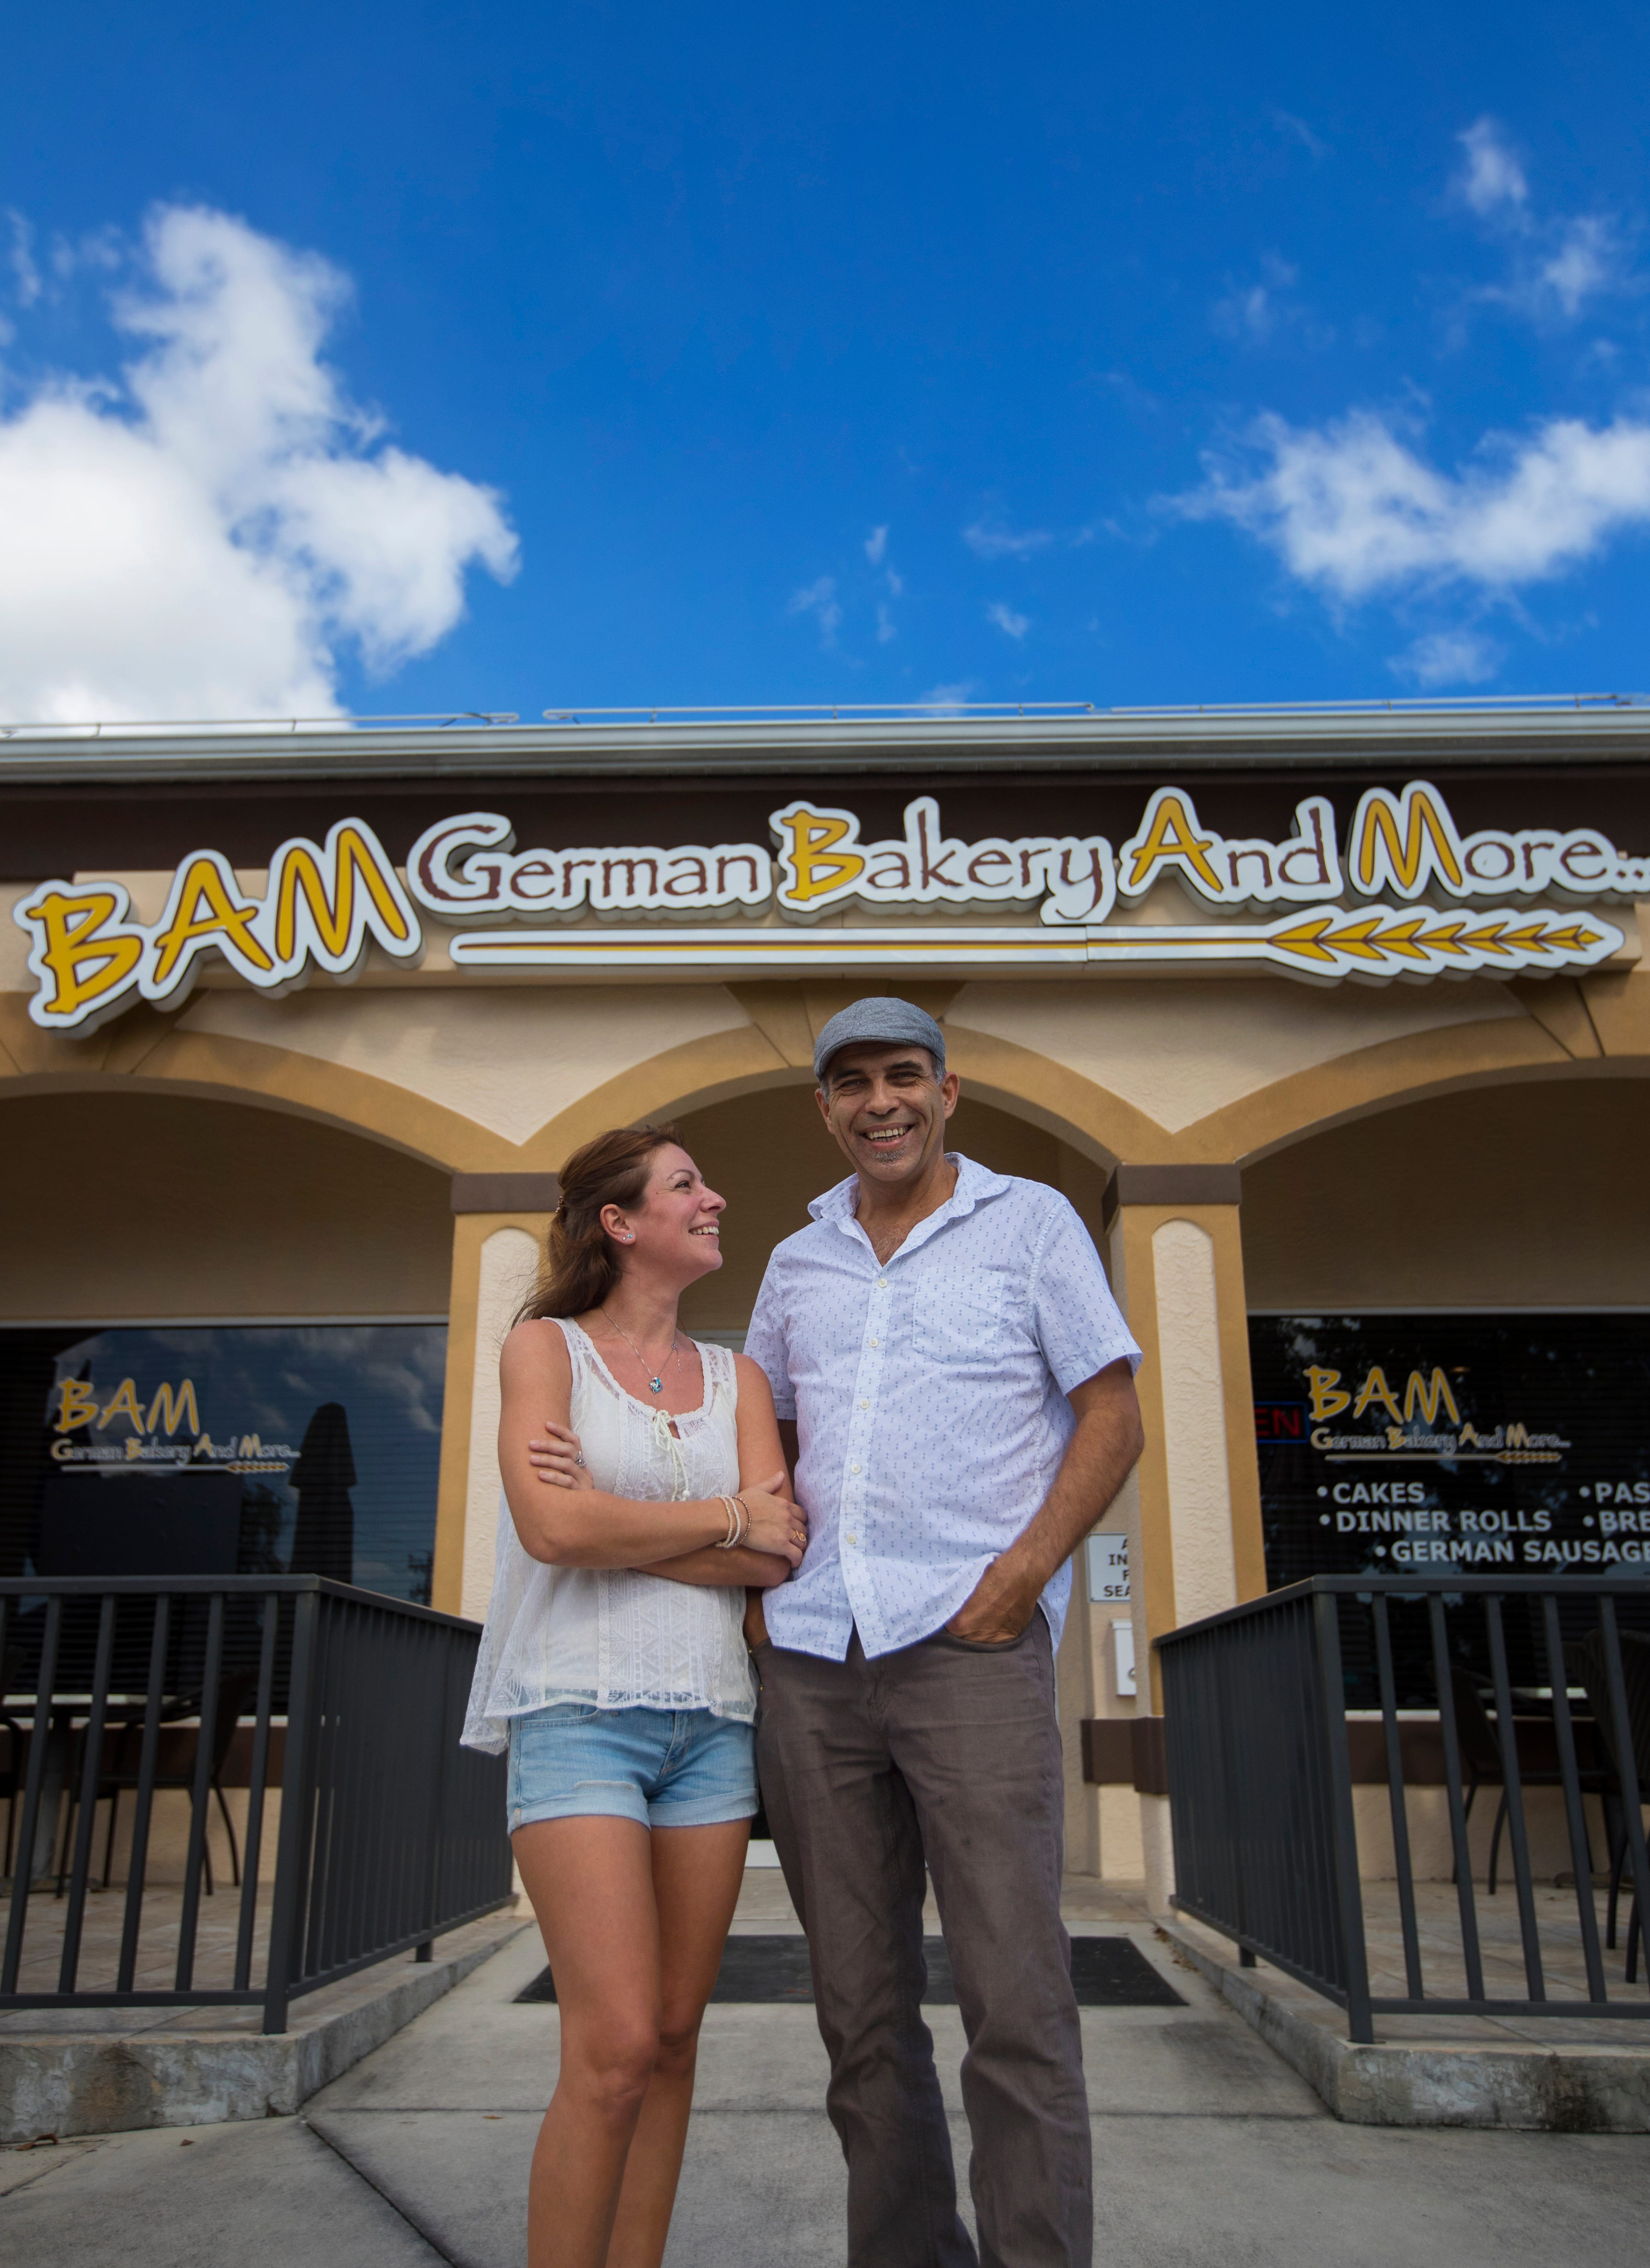 Popular BAM German Bakery on the rise in Cape Coral